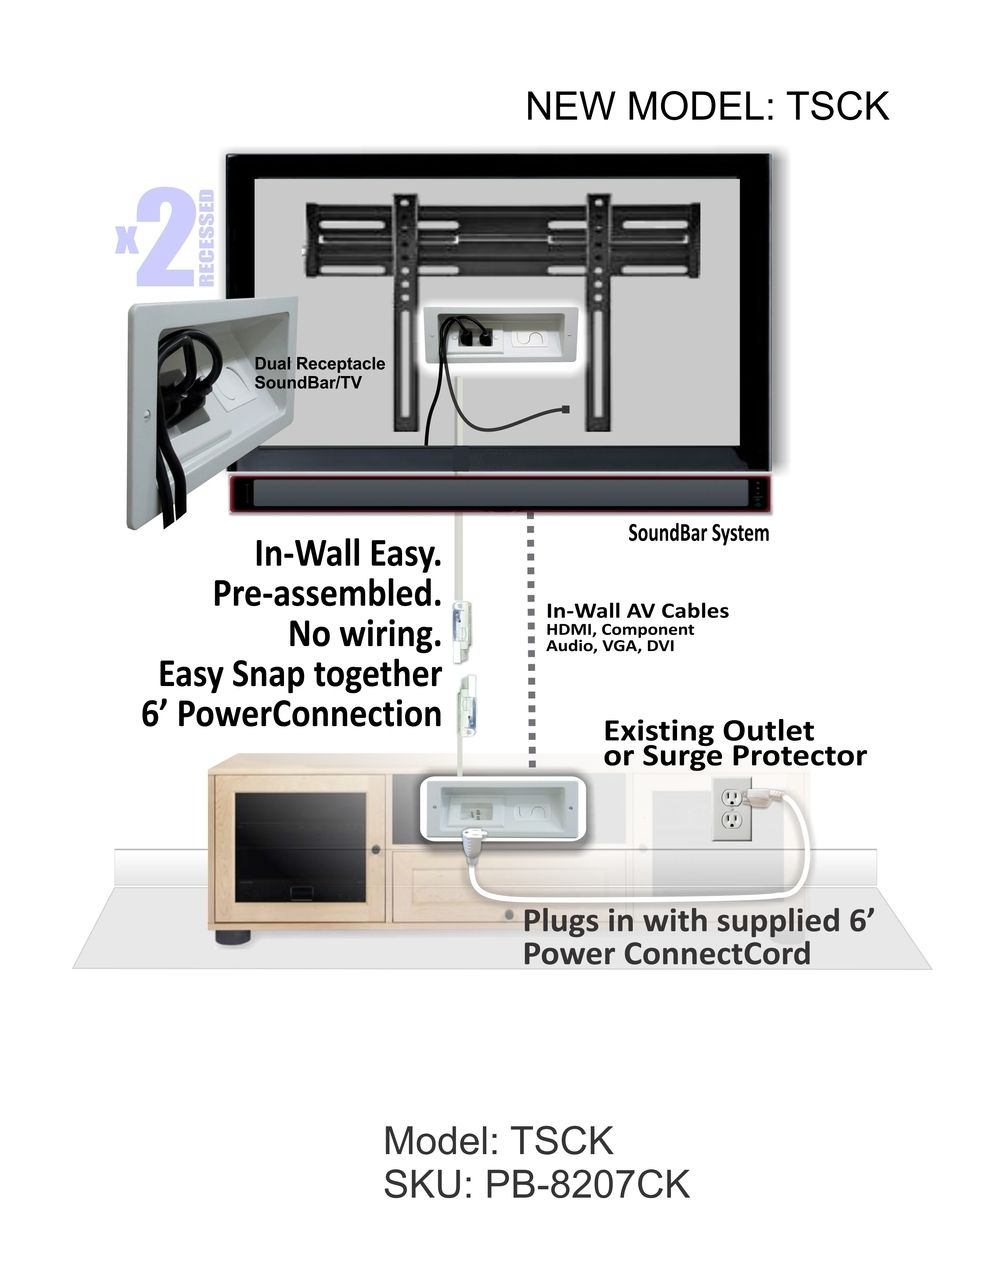 Pin By Wiredhomecom On Diy Cable Management Pinterest Tv Wall Home Outlet Wiring Diagram How To Extend Power From An Existing Mount And Walls